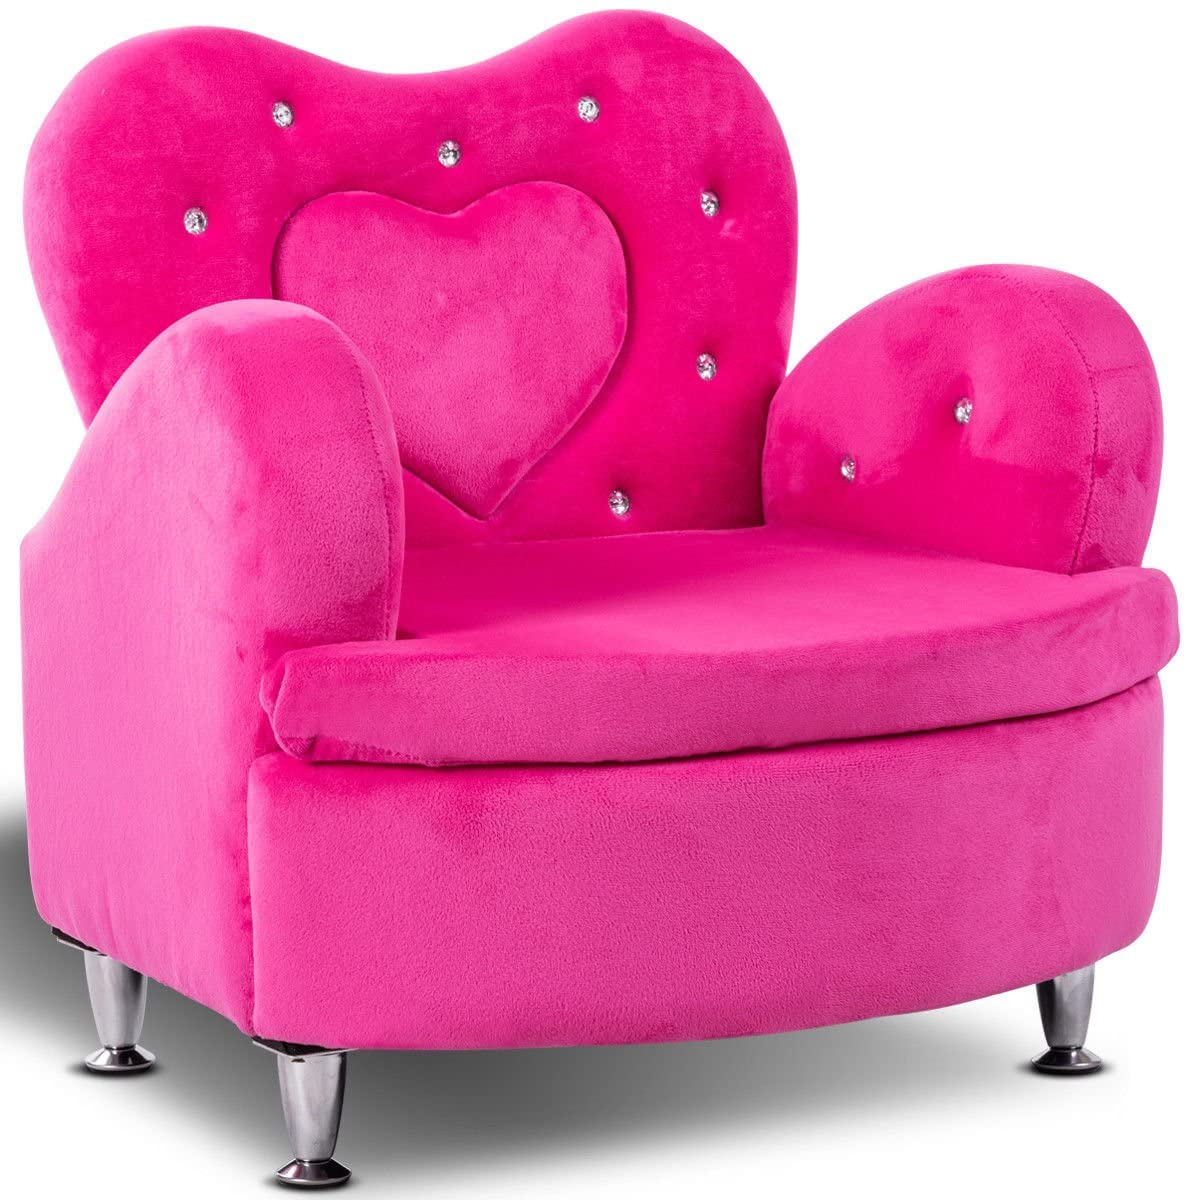 The 10 Best Princess Chair For Toddlers You Should Check Out (2020) 5